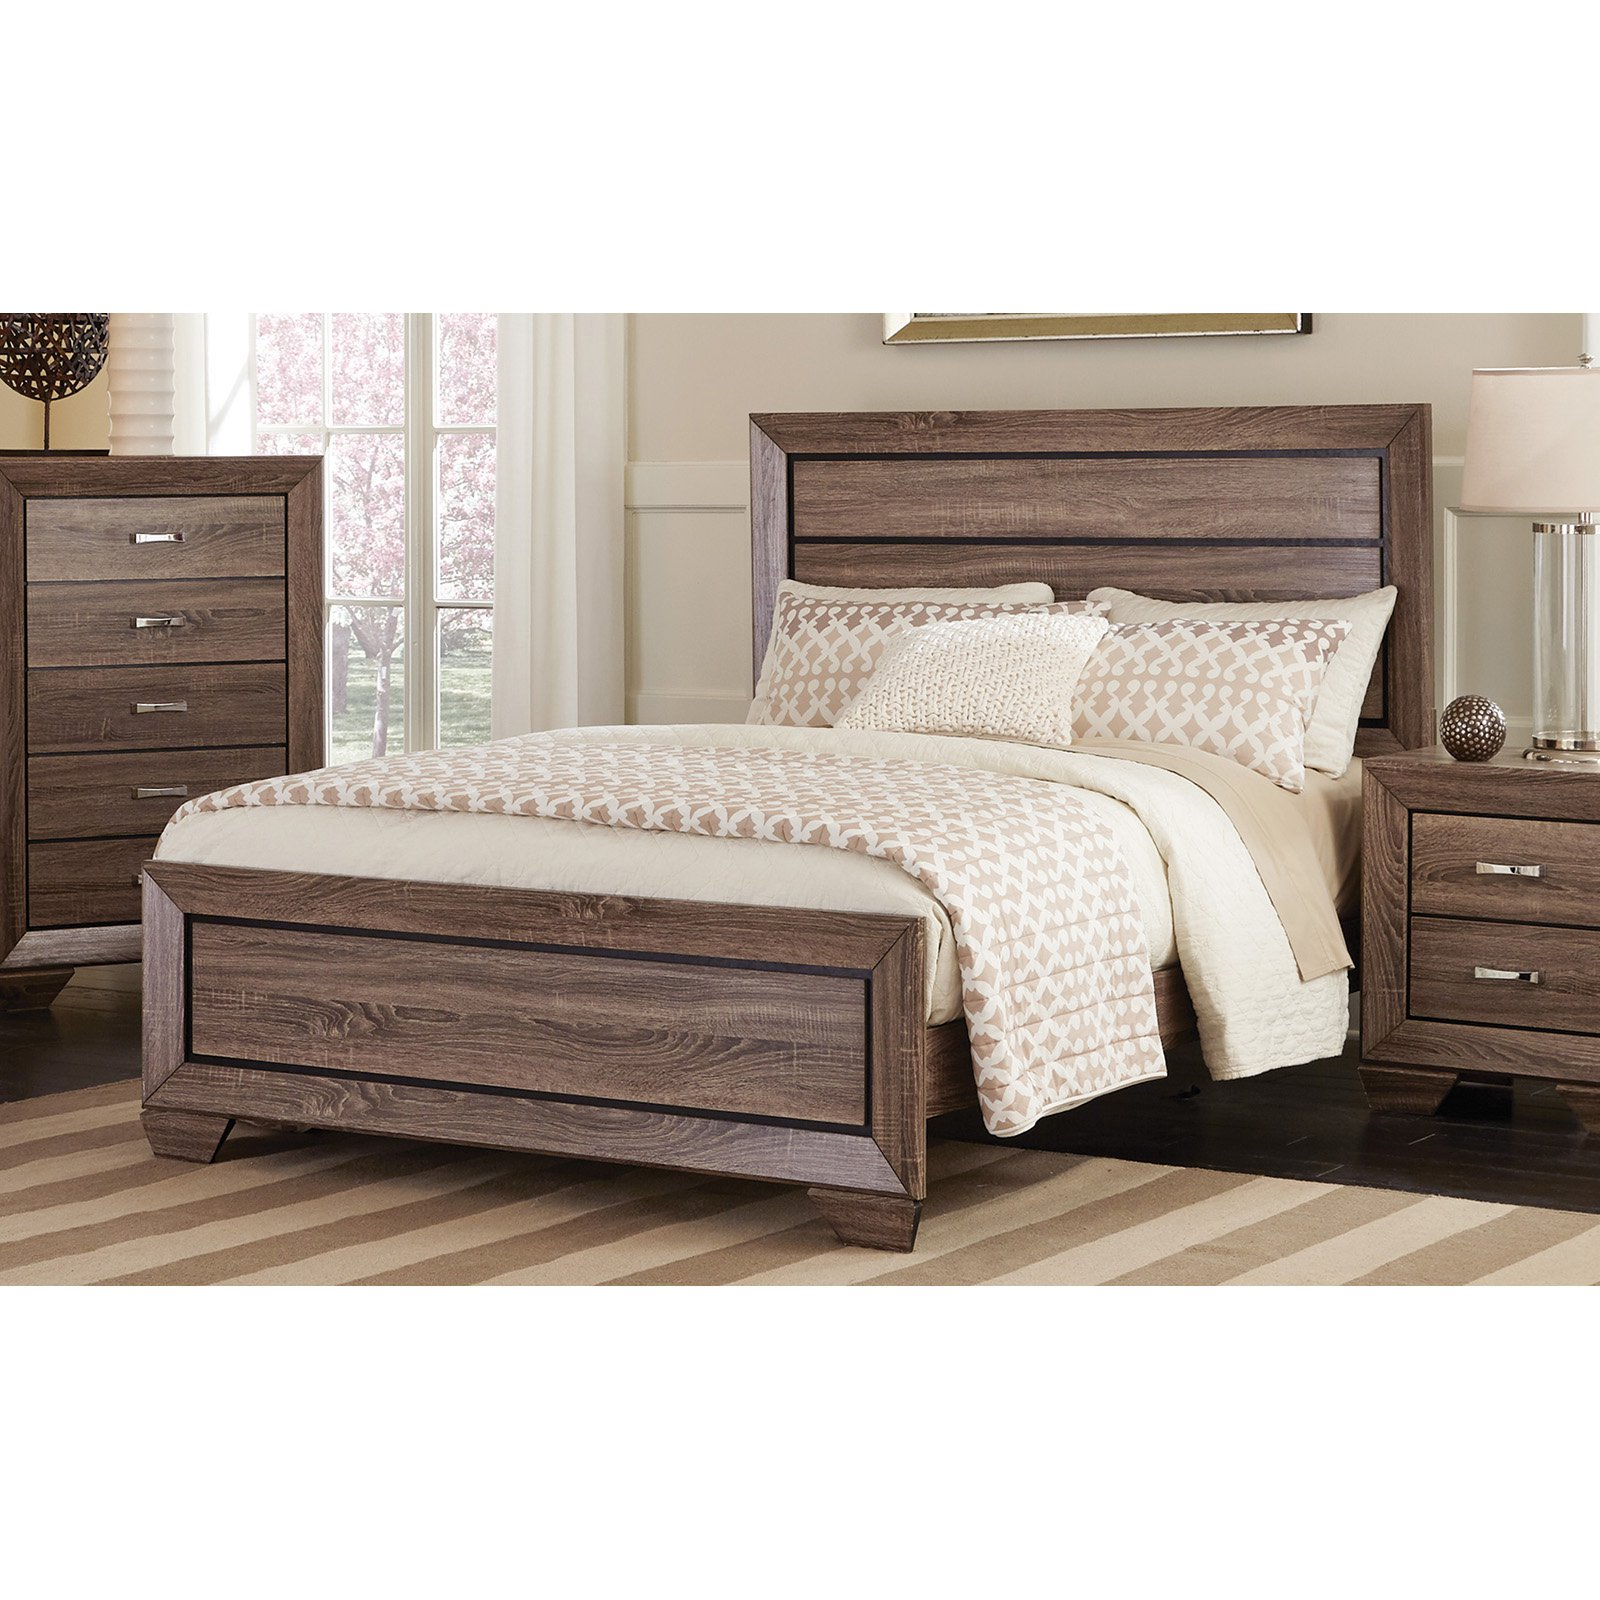 Coaster Furniture Kauffman Panel Bed